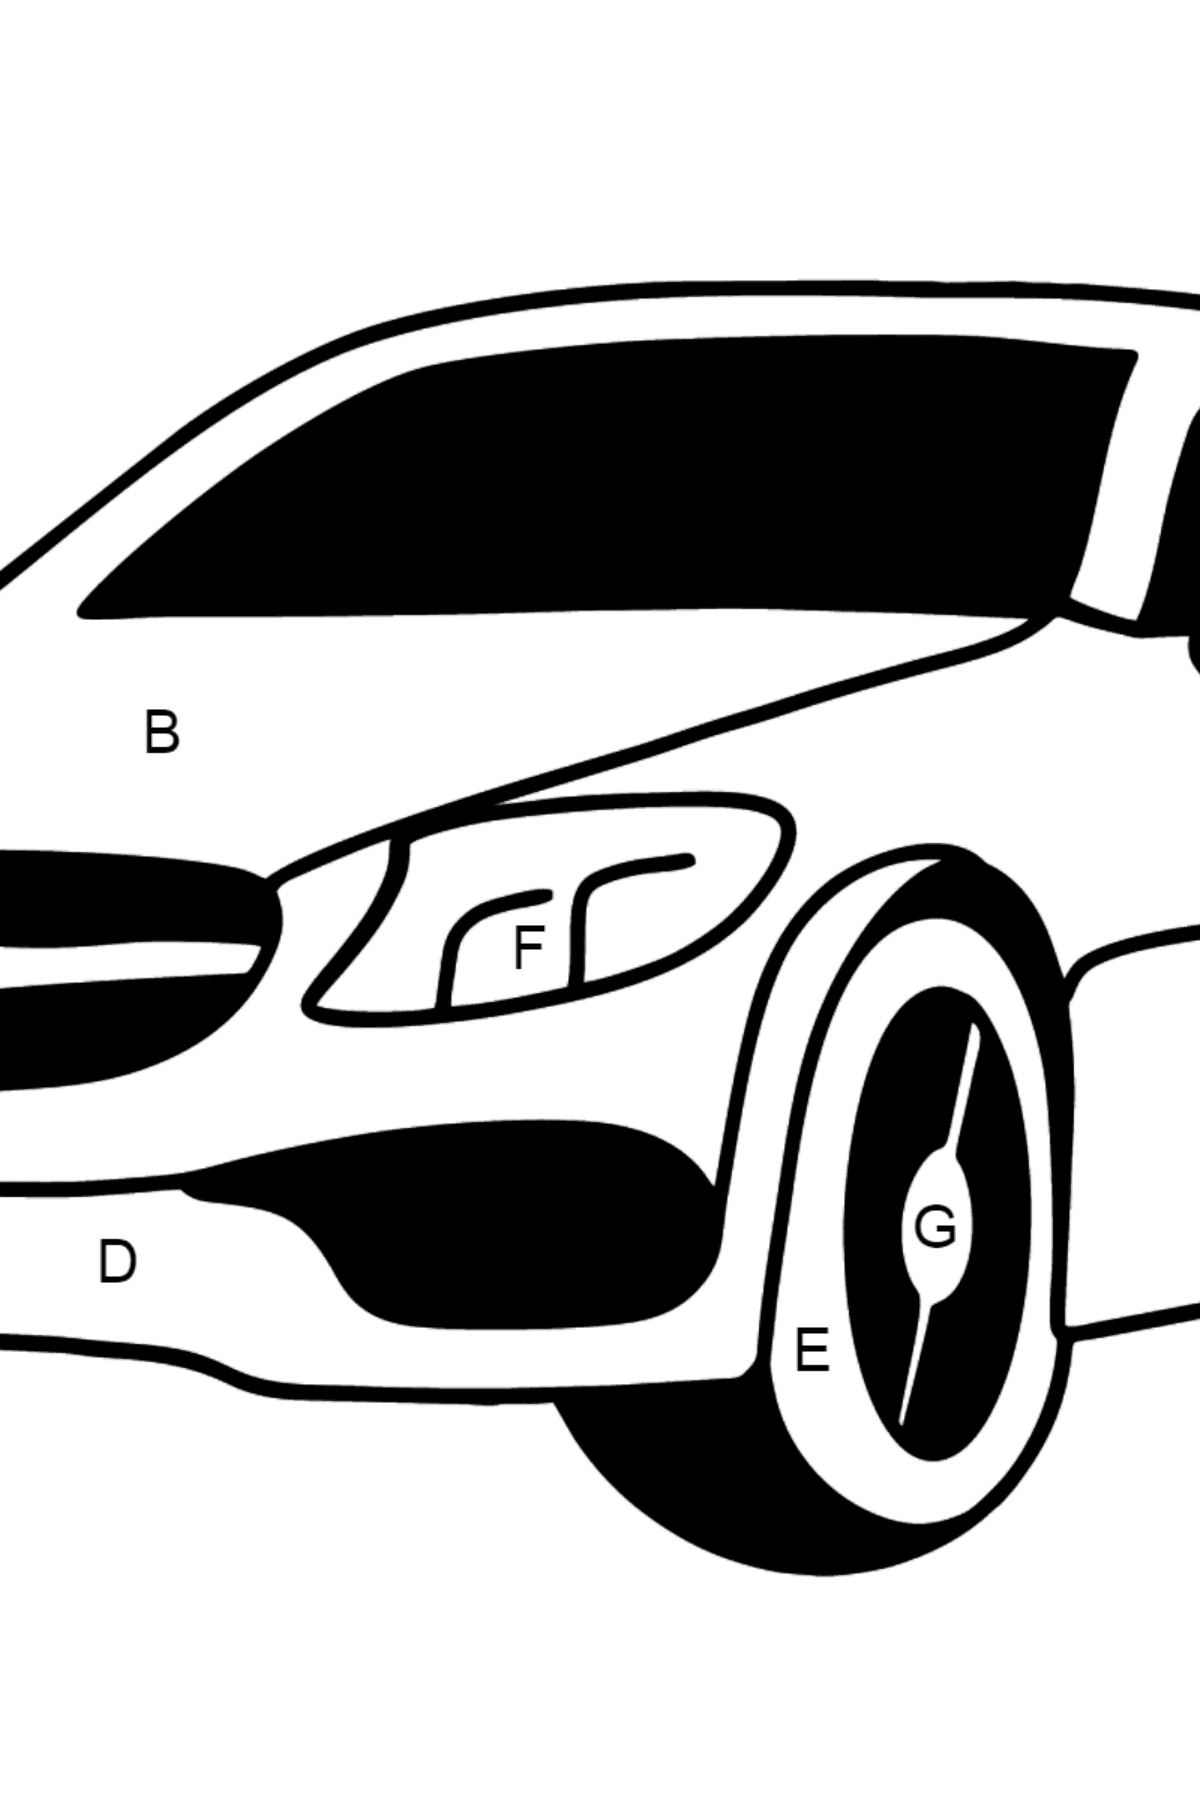 Mercedes C63 AMG car coloring page - Coloring by Letters for Kids